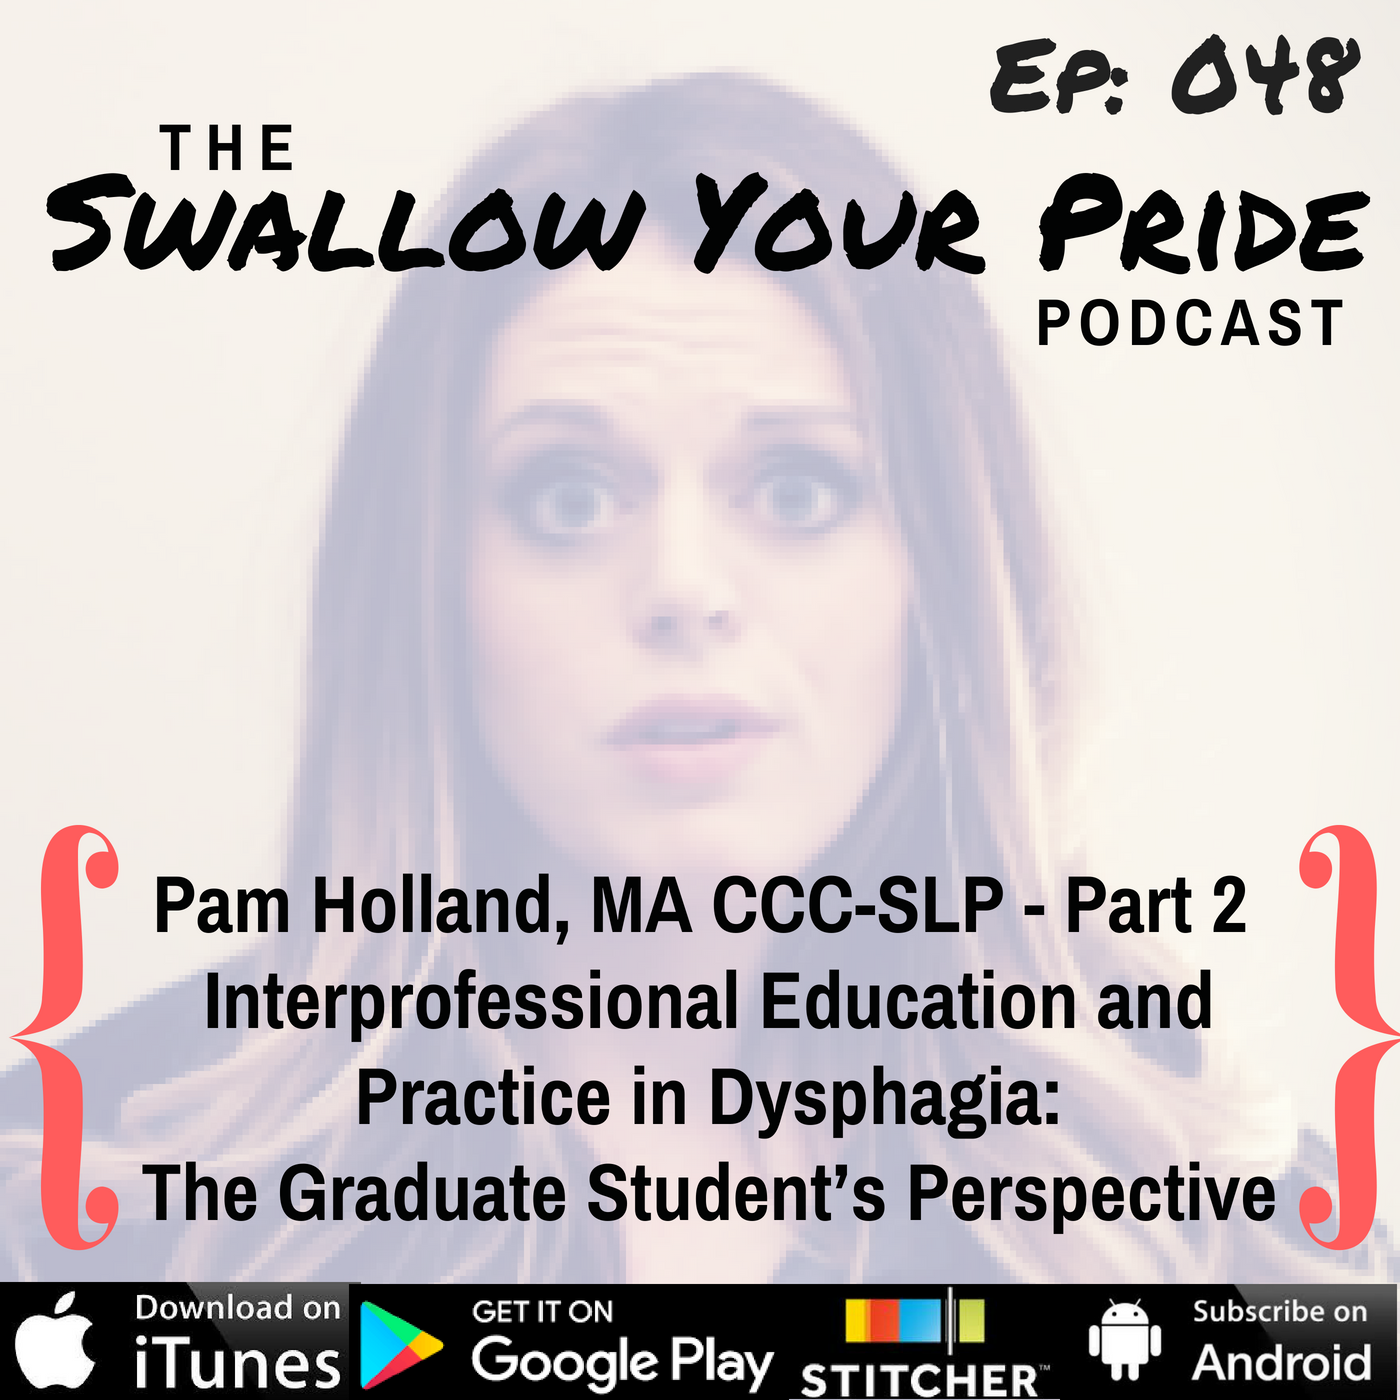 048 – Pam Holland, MA CCC-SLP – Part 2 – Interprofessional Education and Practice in Dysphagia:  The Graduate Student's Perspective